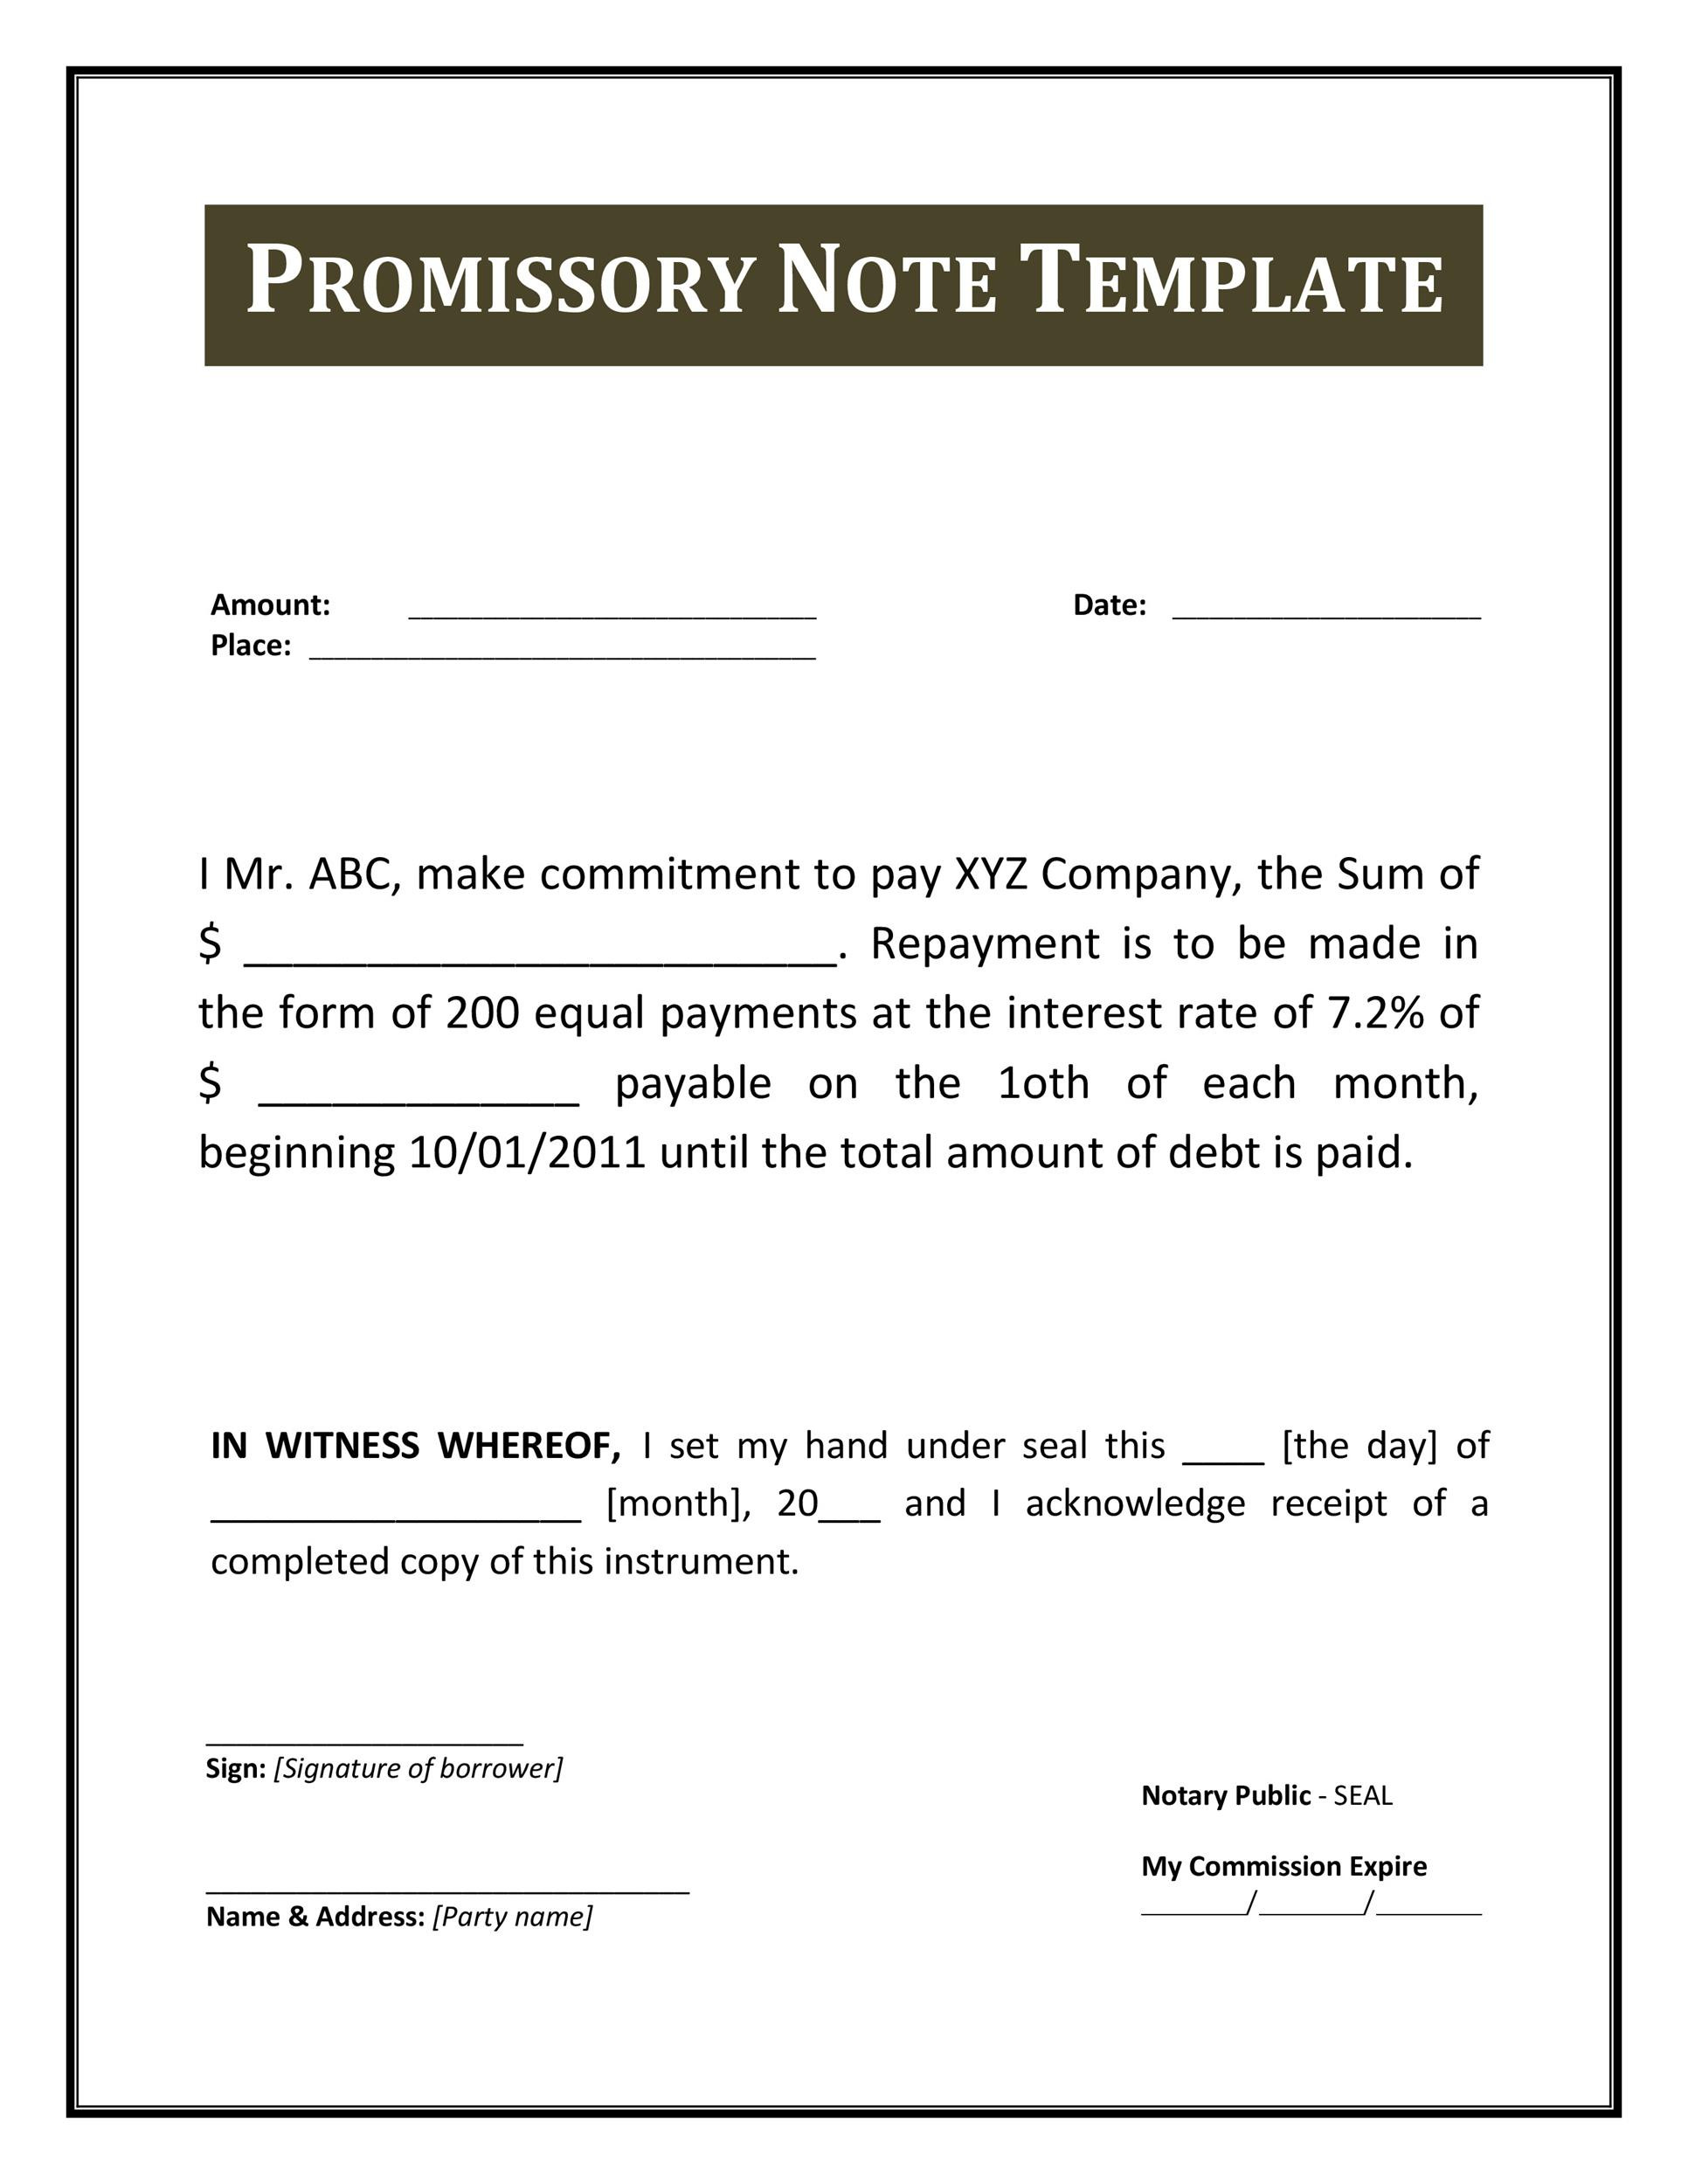 45 FREE Promissory Note Templates & Forms [Word & PDF]